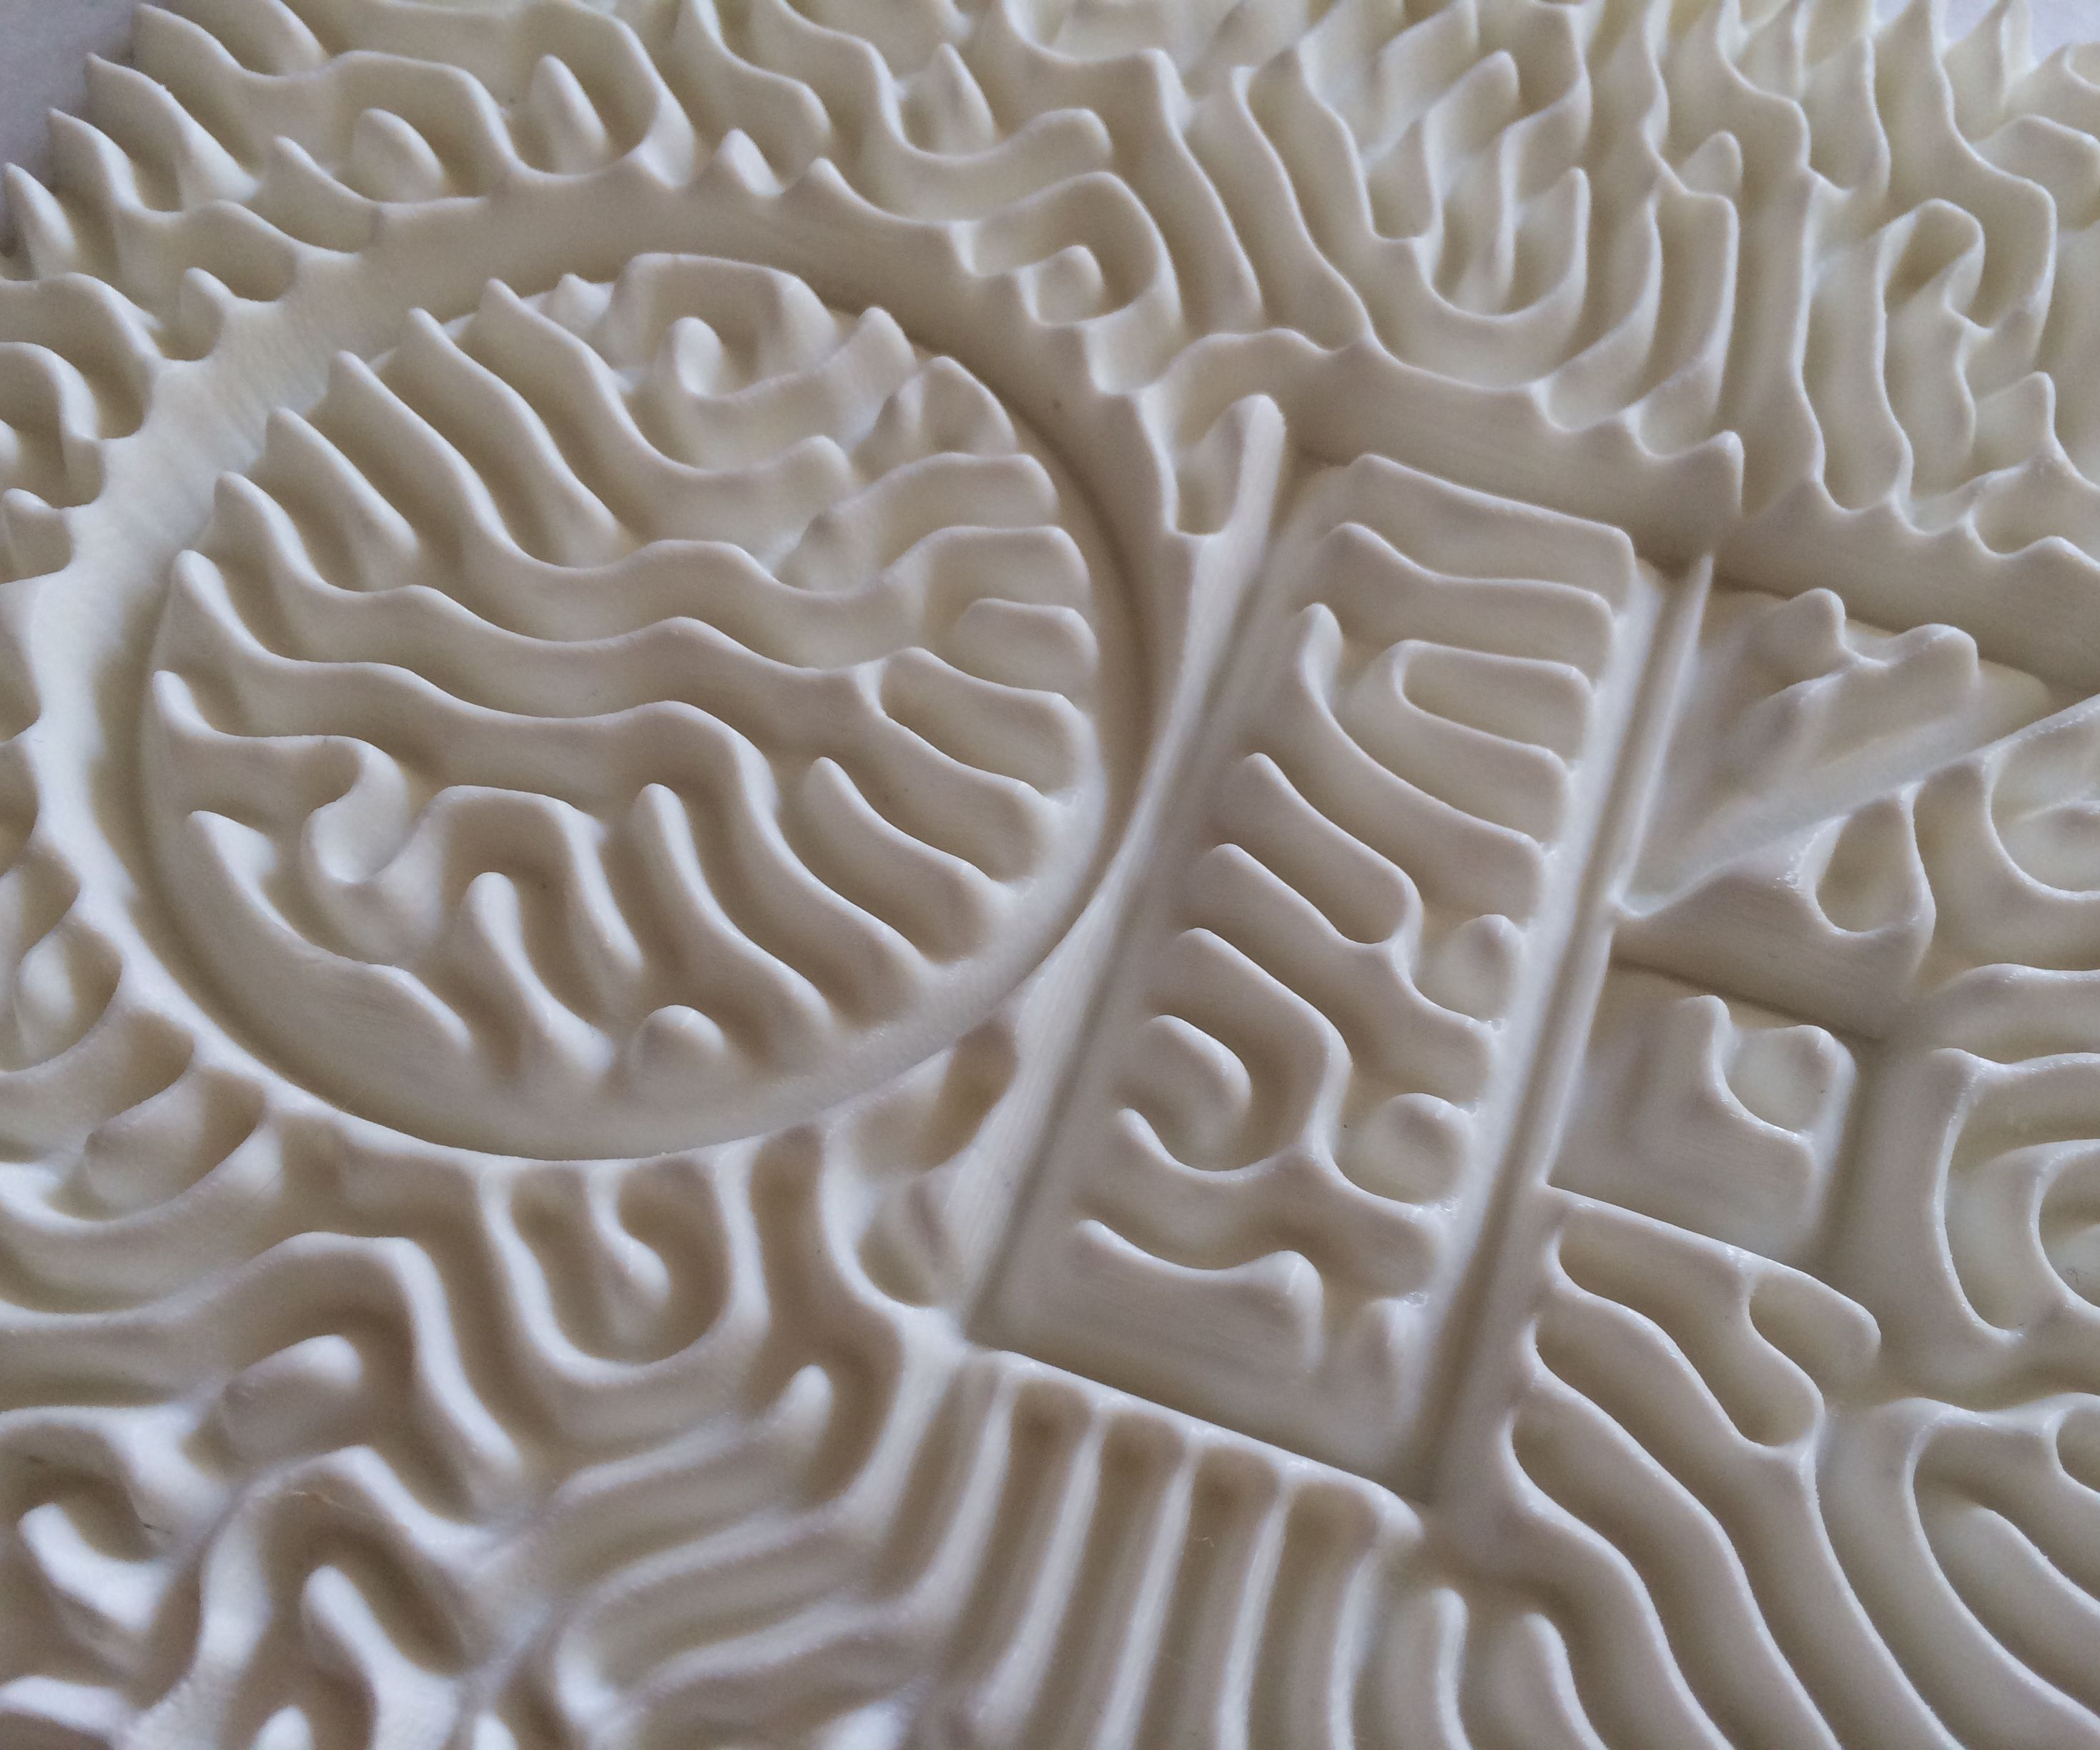 3D Printed Reaction Diffusion Patterns